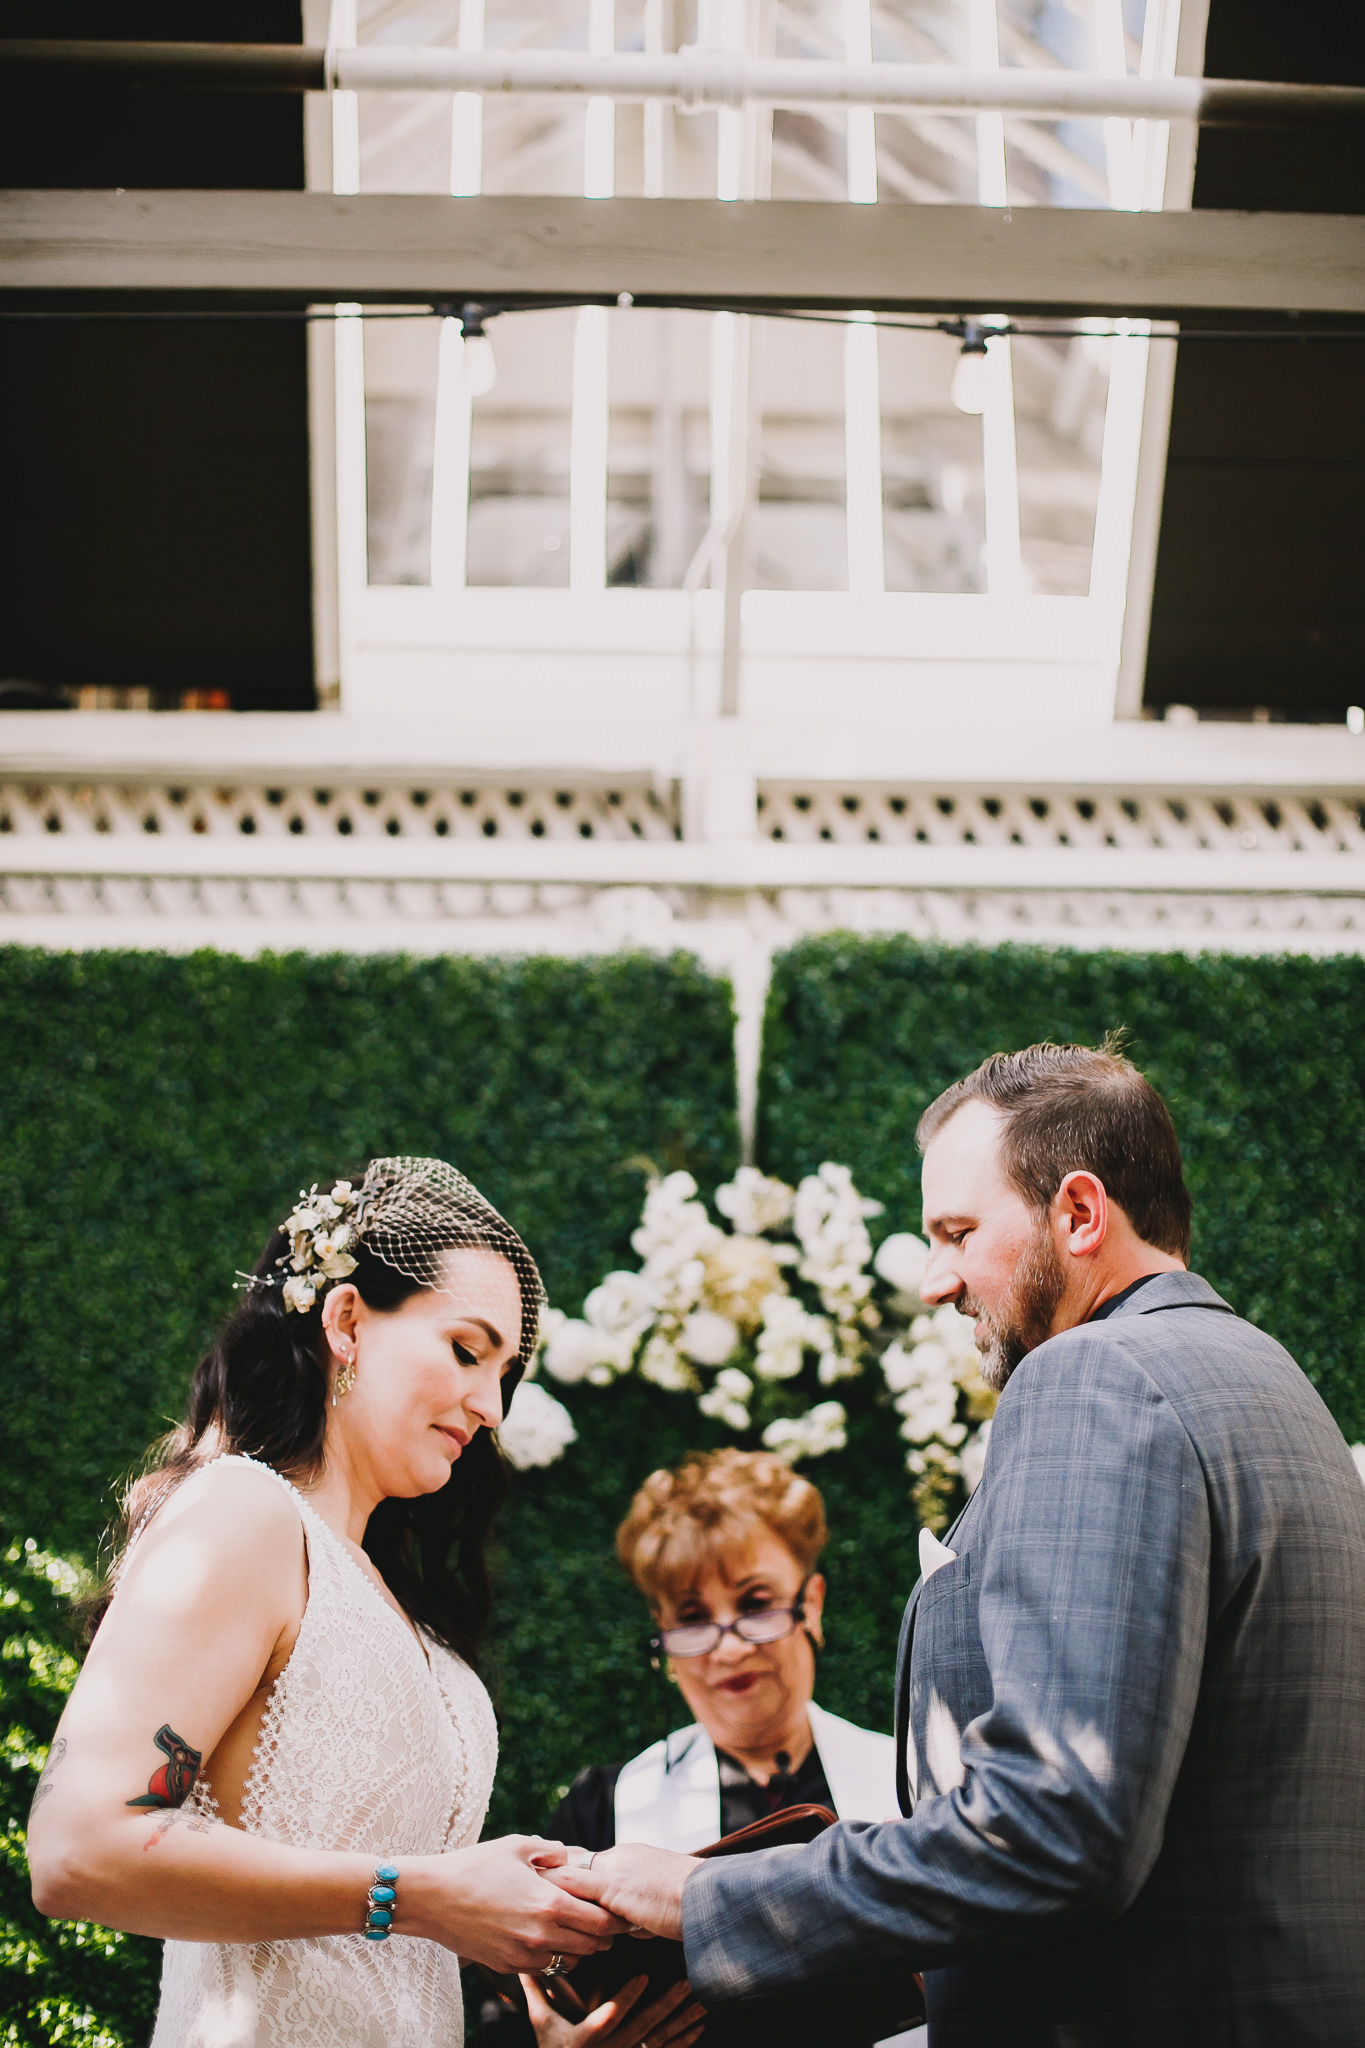 Archer Inspired Photography Sara and Aaron Winchester Mystery House NorCal San Jose California Wedding Photographer-161.jpg